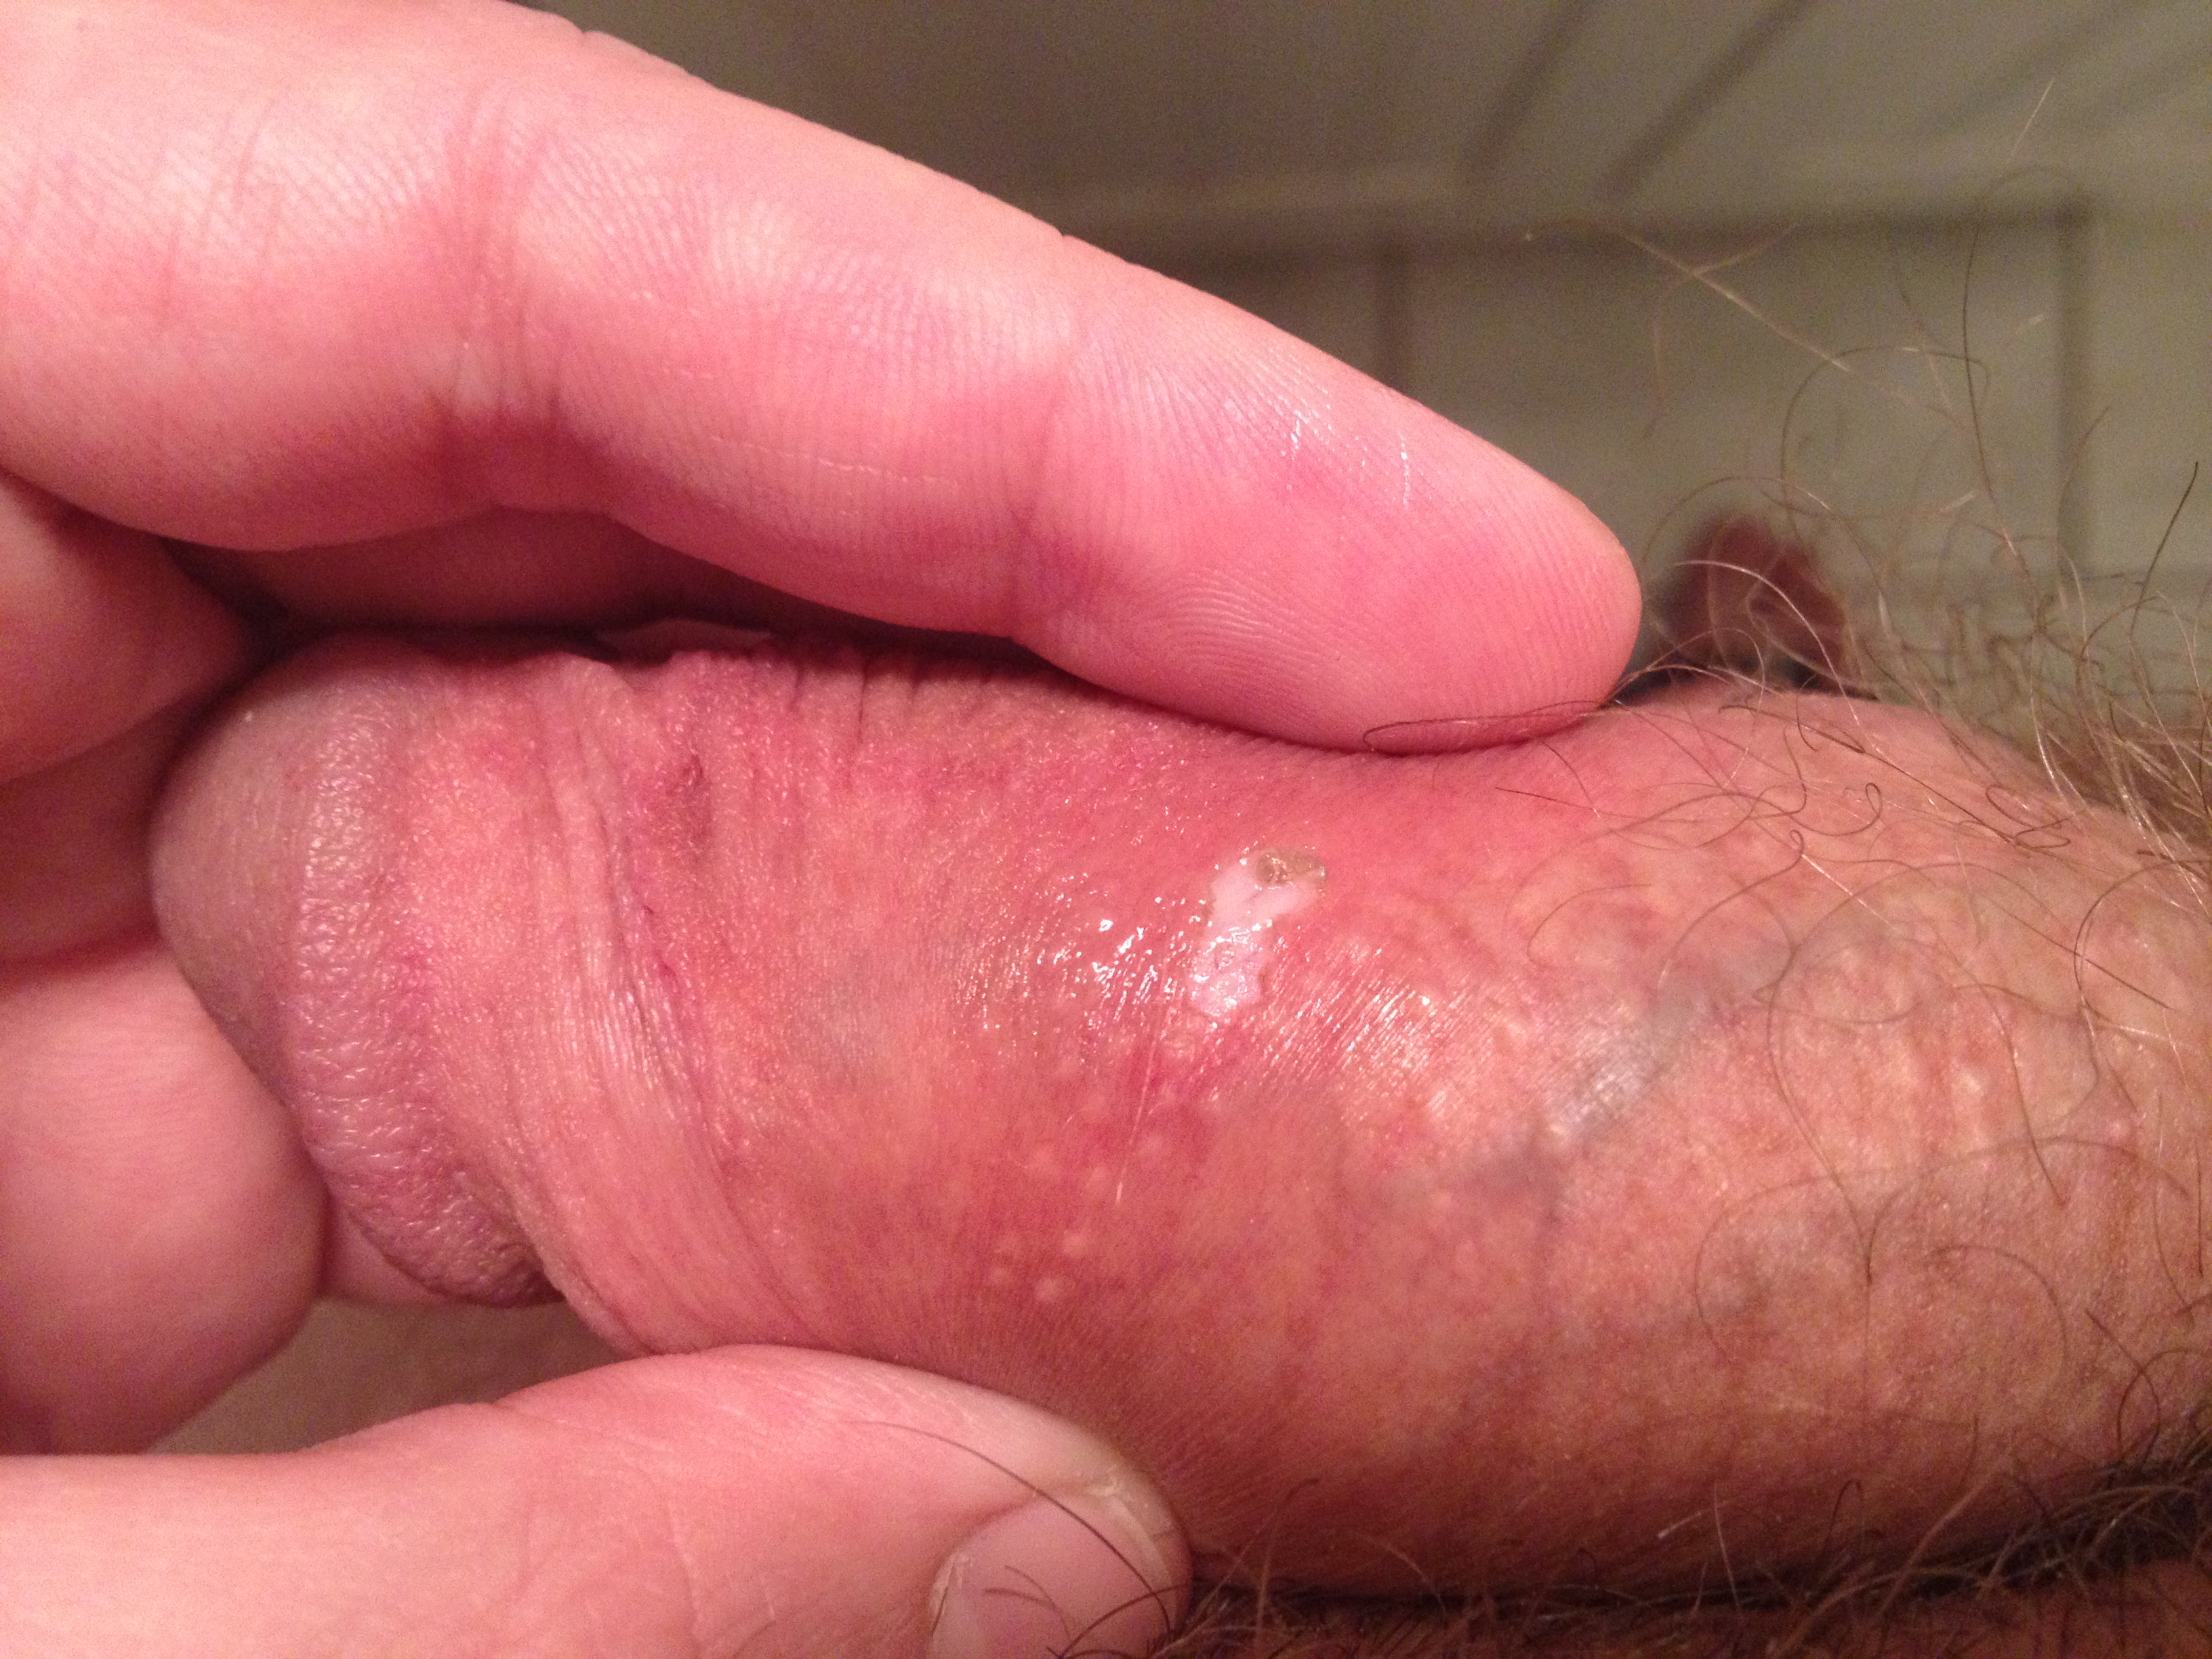 Is the tip of your penis sore, red or itchy